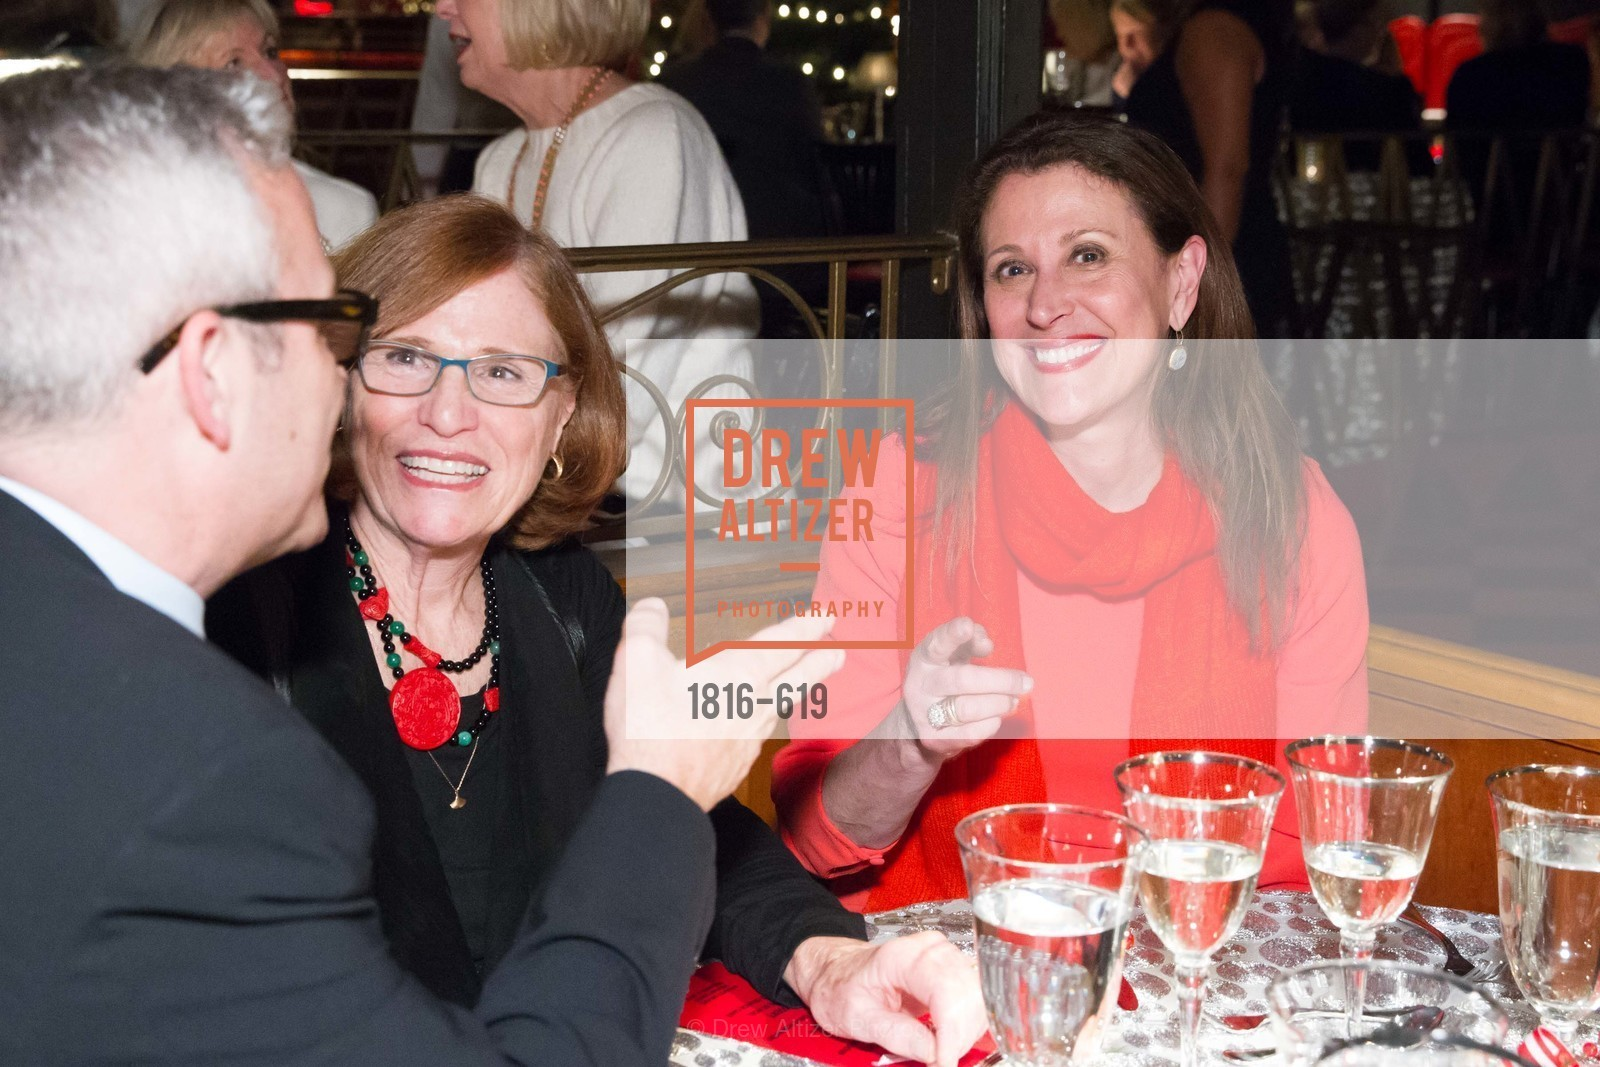 Extras, Shansby/Matarasso Holiday Lunch, December 4th, 2015, Photo,Drew Altizer, Drew Altizer Photography, full-service agency, private events, San Francisco photographer, photographer california